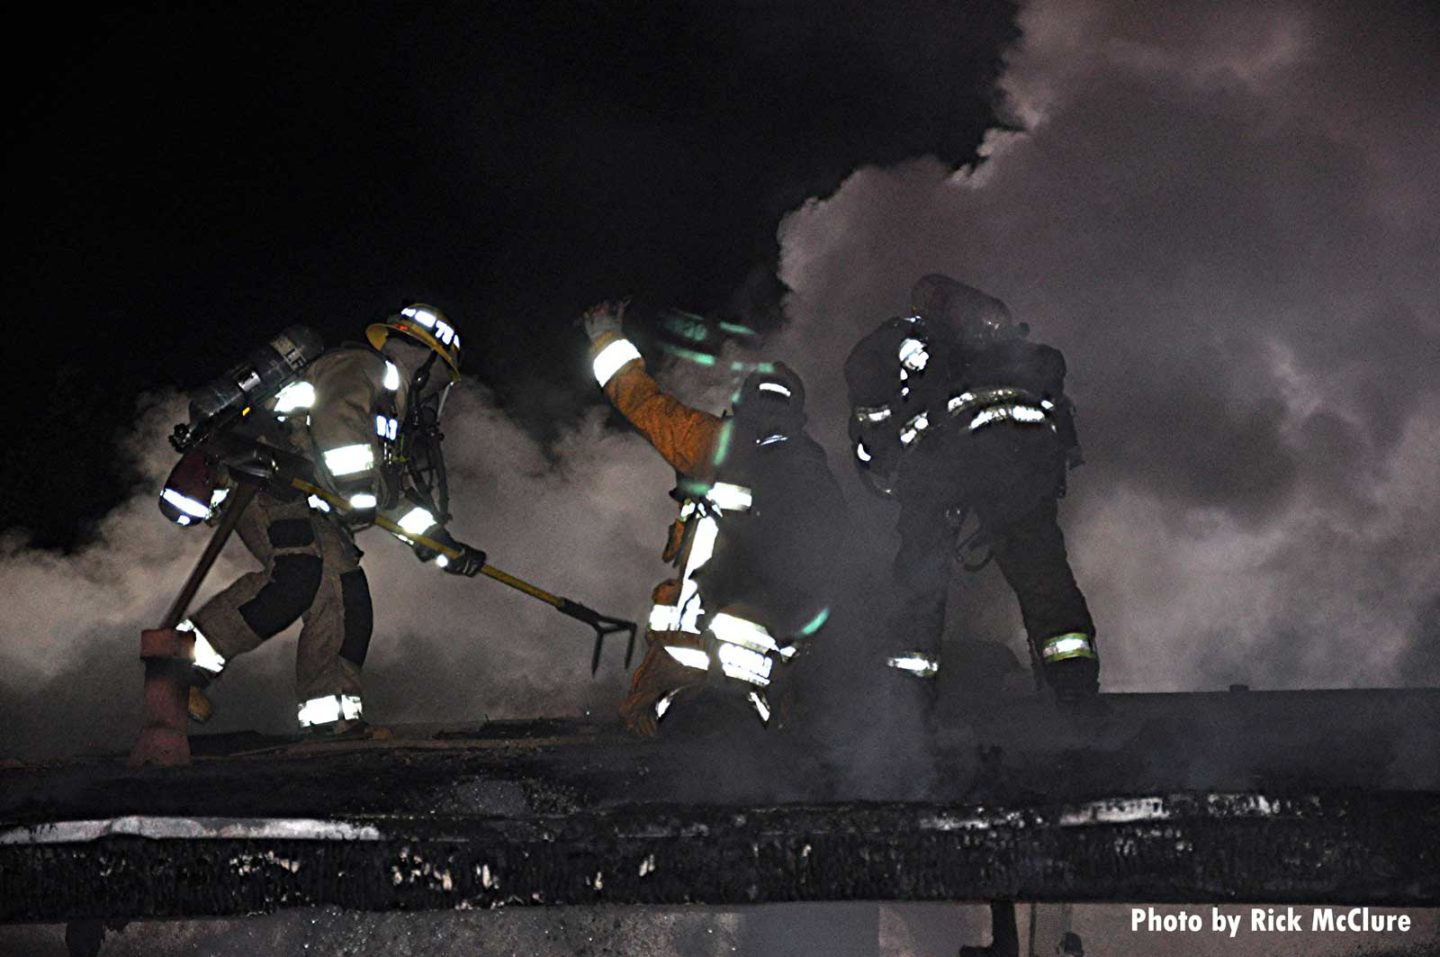 Firefighters open up a roof, partly obscured by smoke